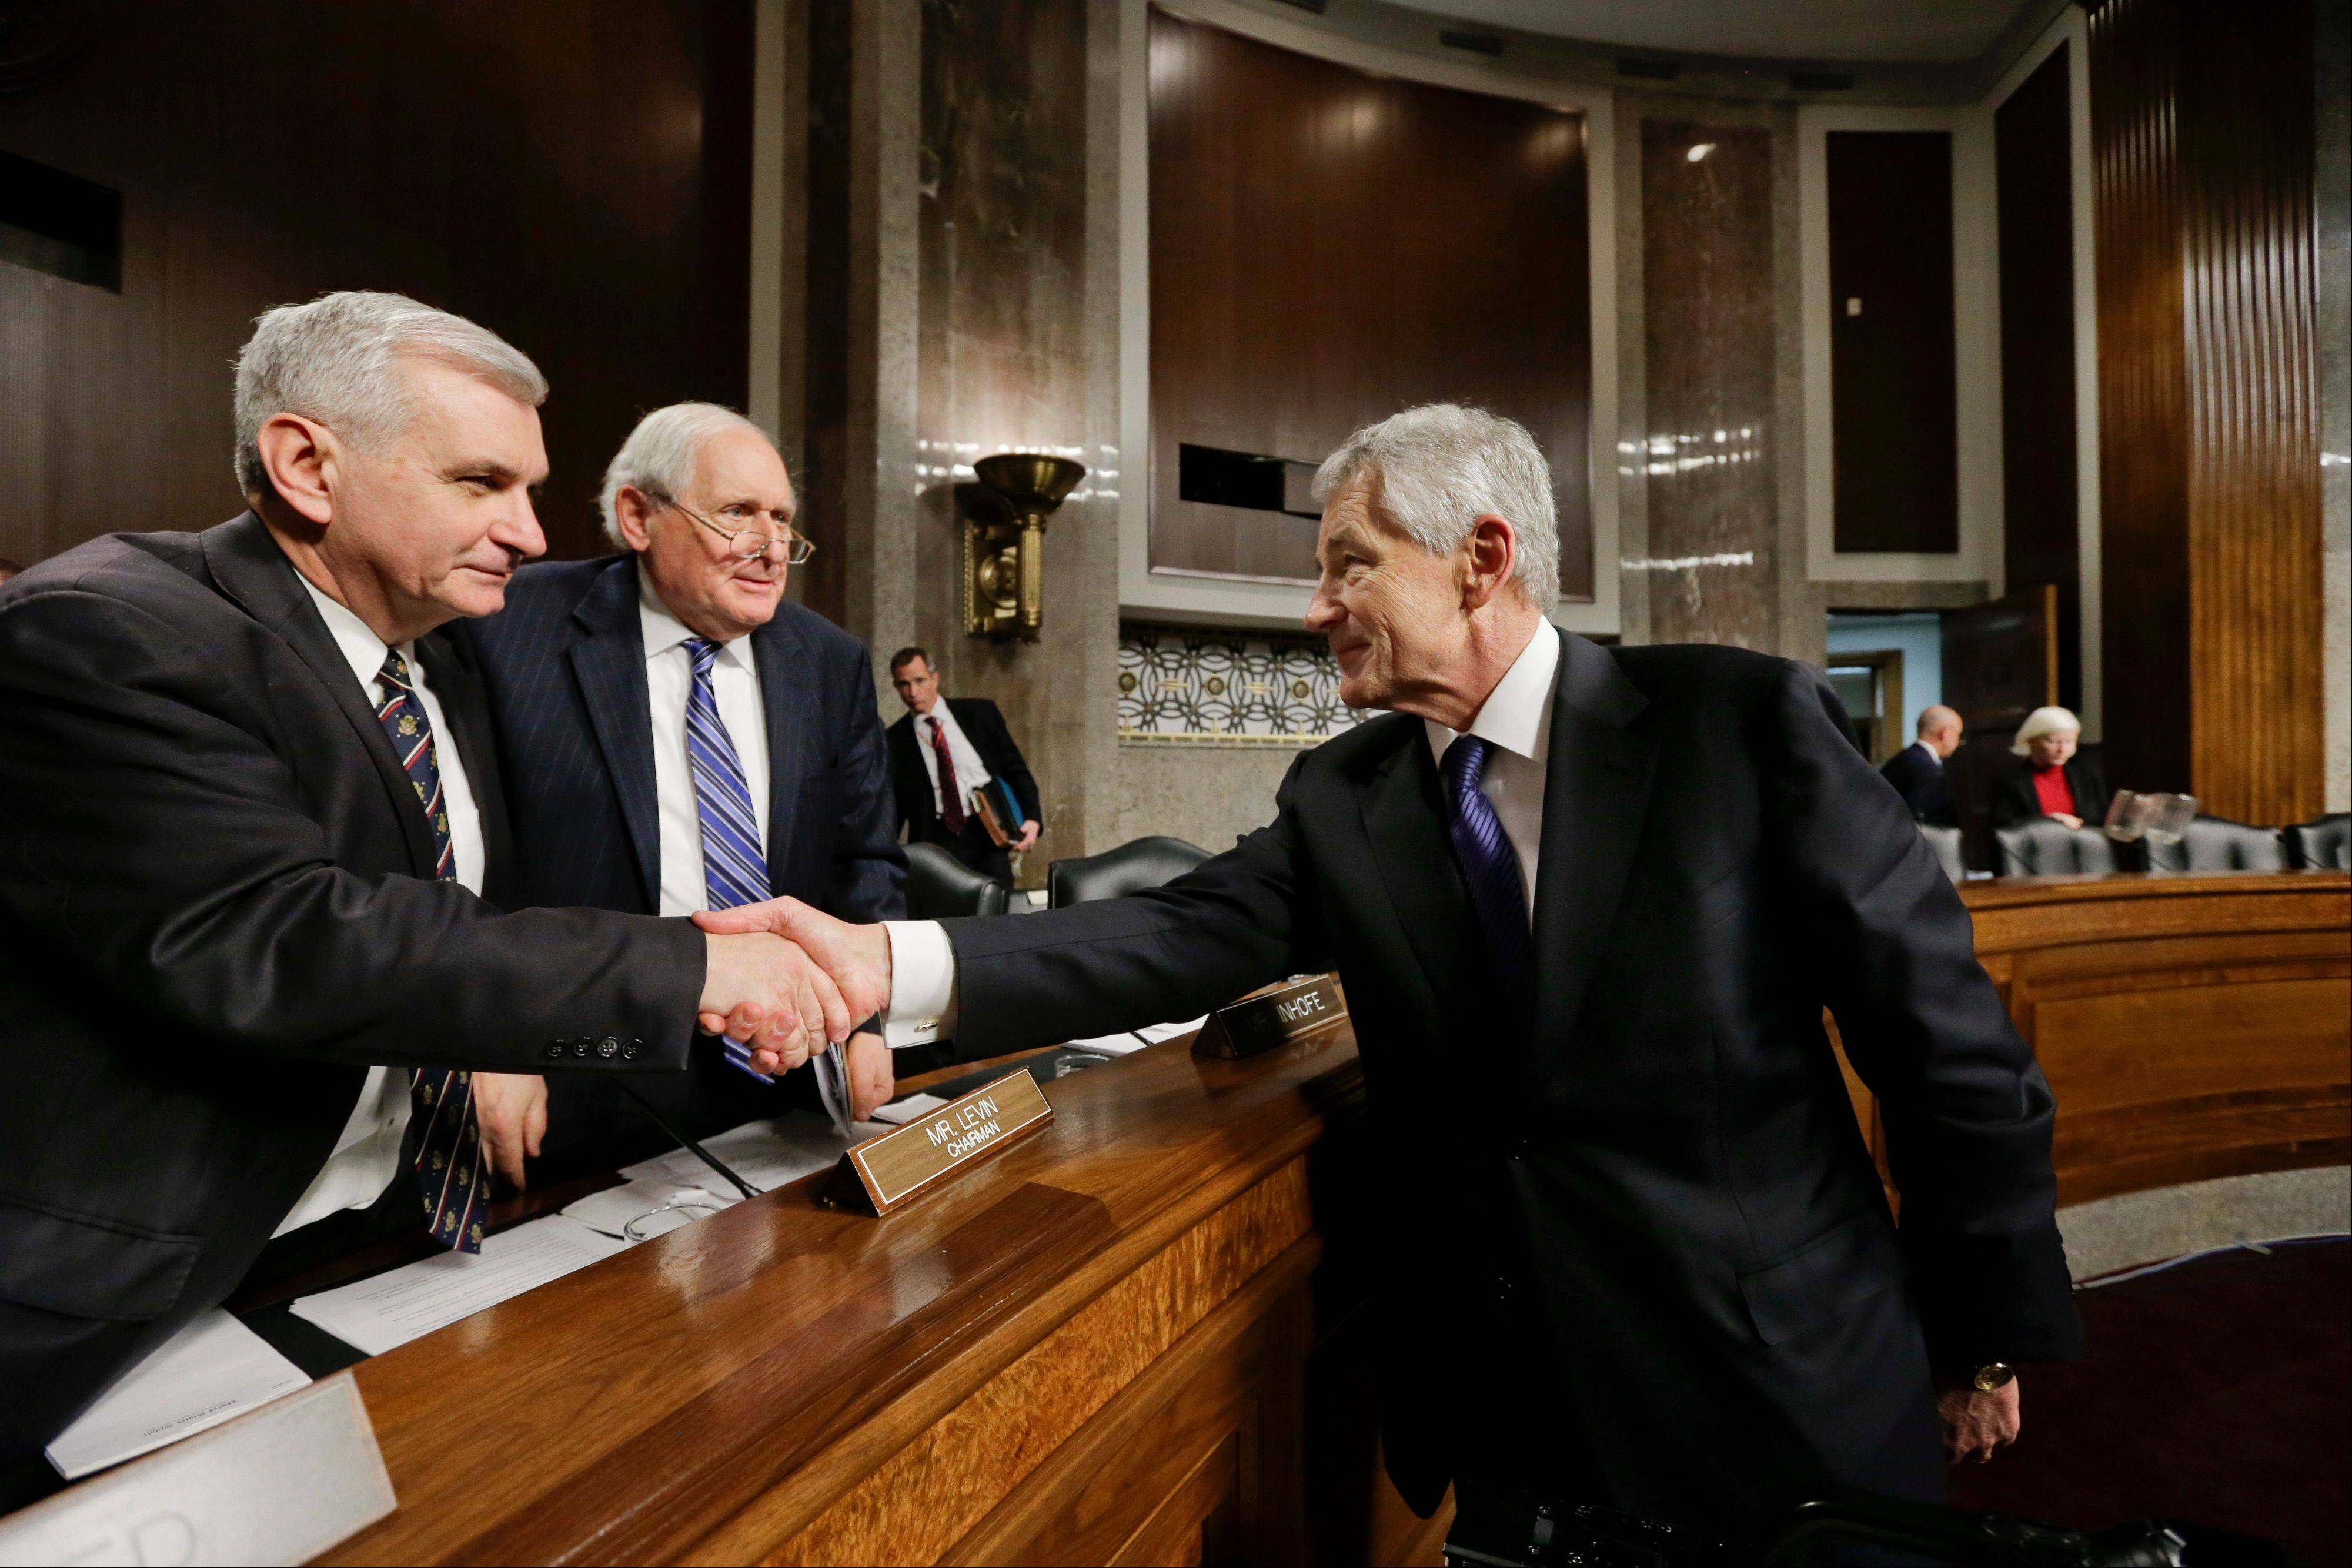 Chuck Hagel, right, President Obama's nominee to become secretary of defense, shakes hands with Sen. Jack Reed, D-R.I., far left, and Senate Armed Services Committee Chairman Carl Levin, D-Mich., second from left, at the end of his confirmation hearing, on Capitol Hill in Washington, Thursday, Jan. 31, 2013.